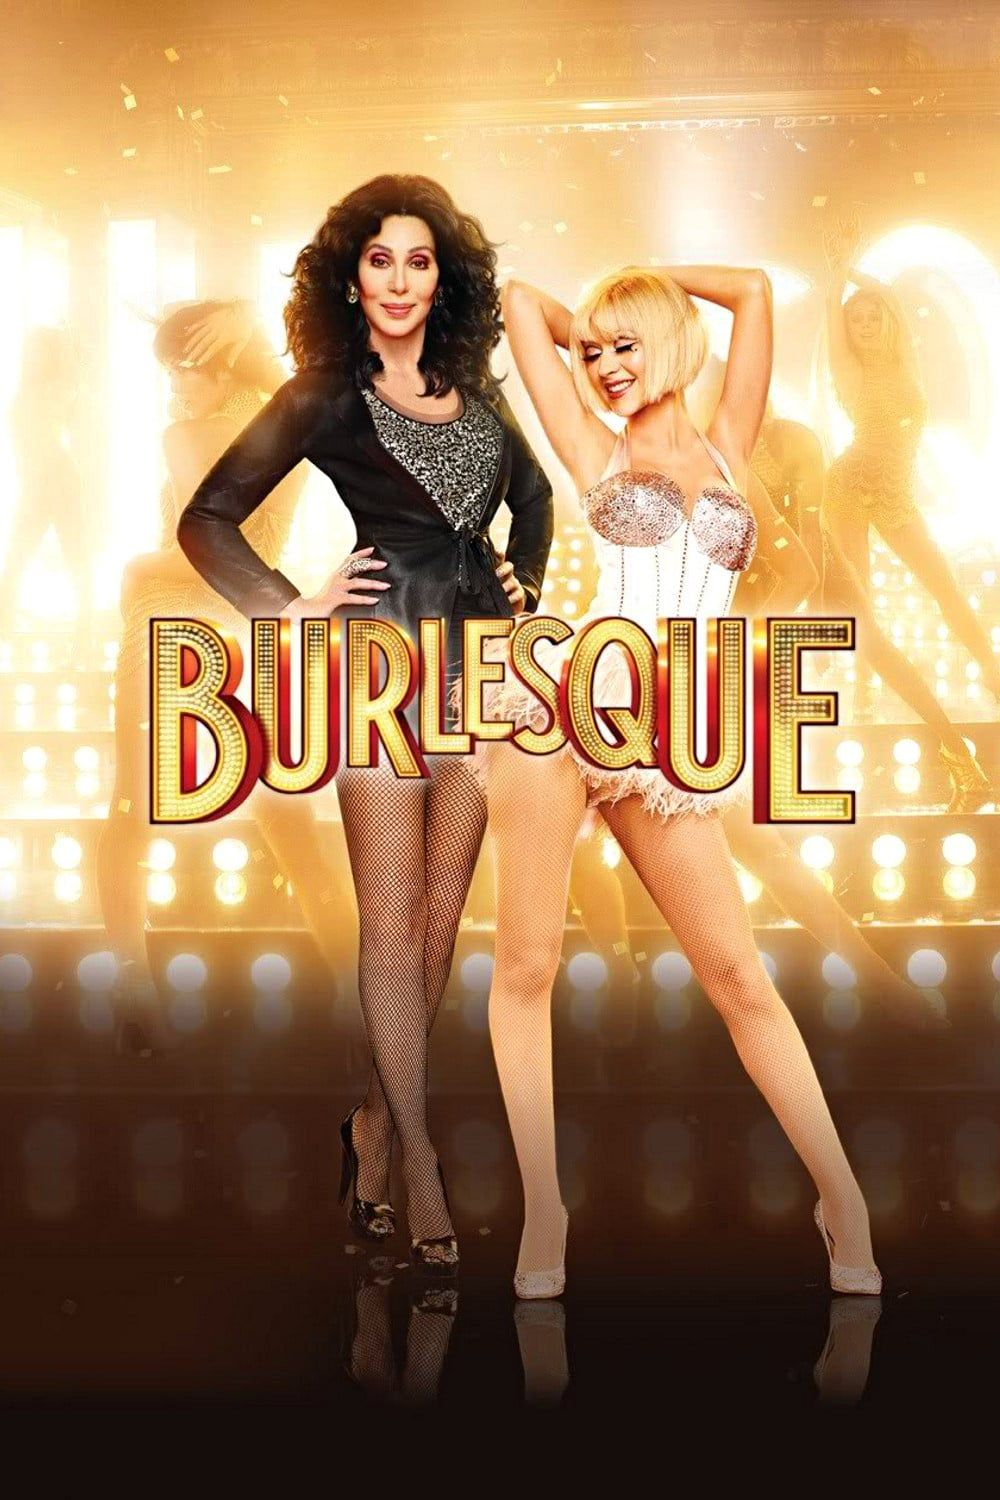 Burlesque P E L I C U L A Completa 2010 Gratis En Español Latino Hd Burlesque Movie Burlesque Full Movie Dance Movies